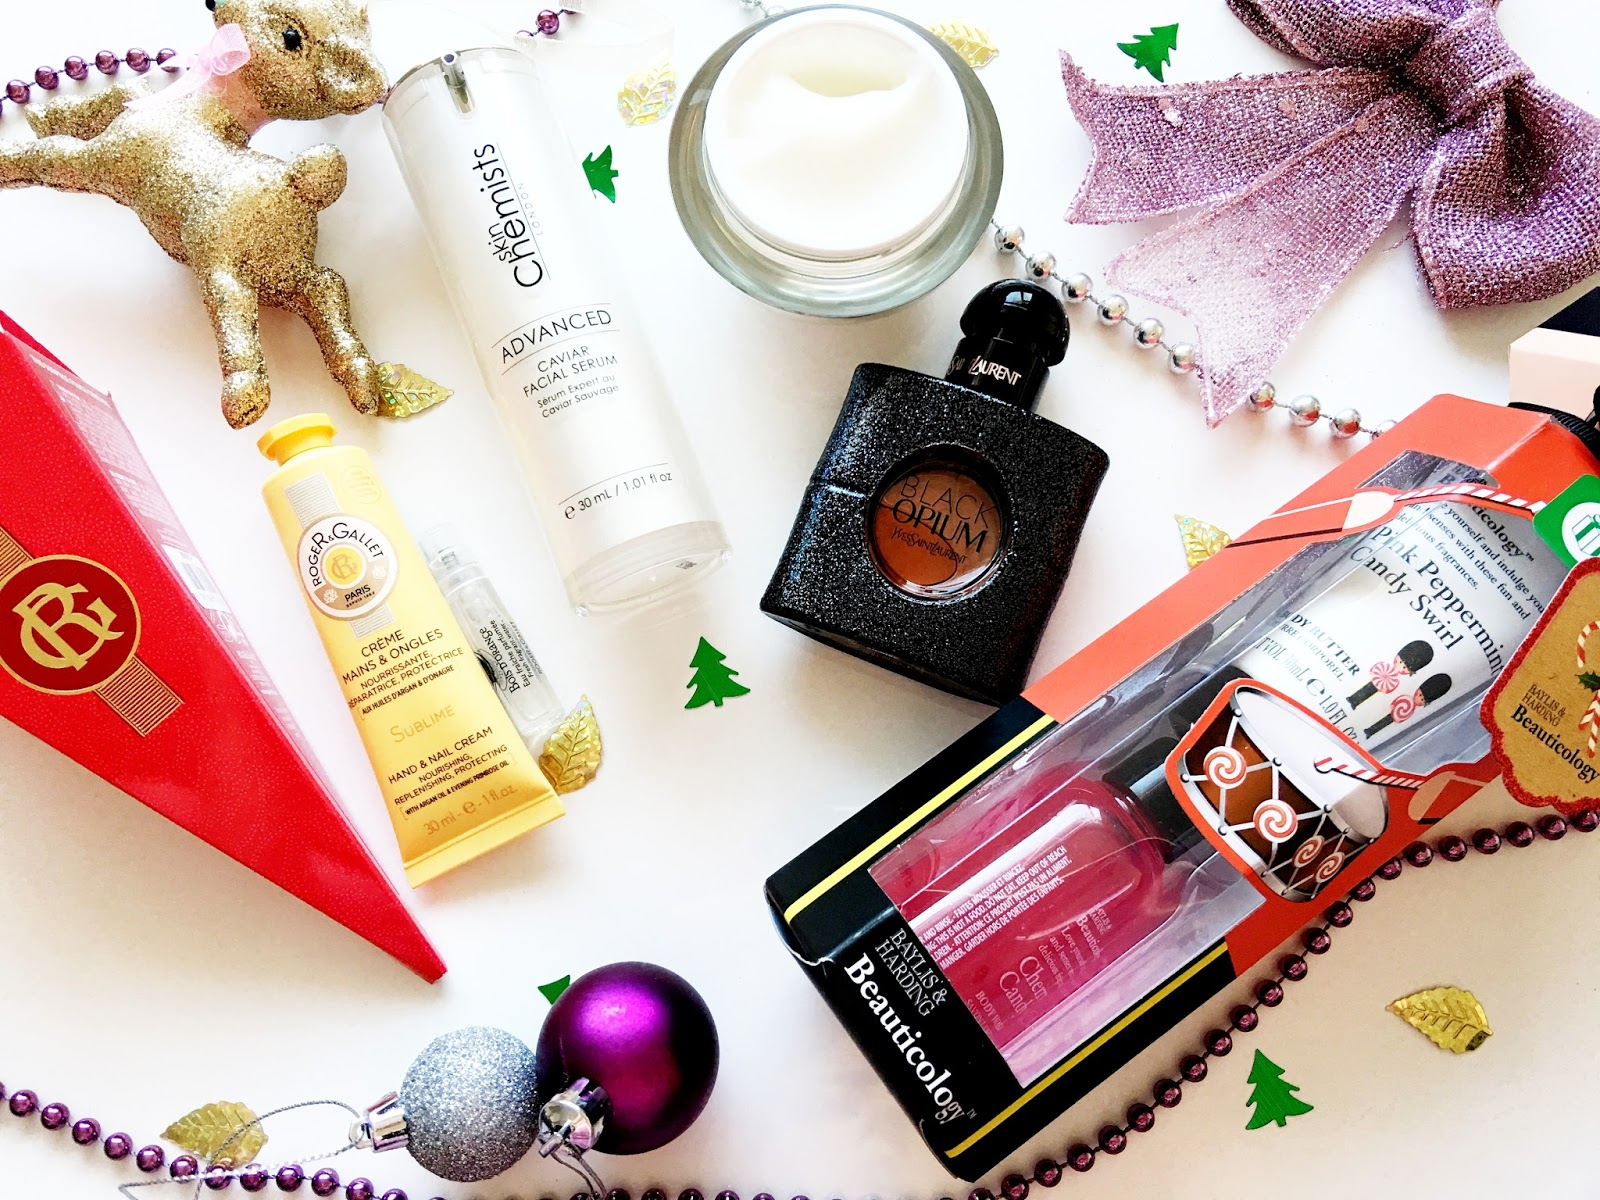 Last Minute Beauty Christmas Gift Guide